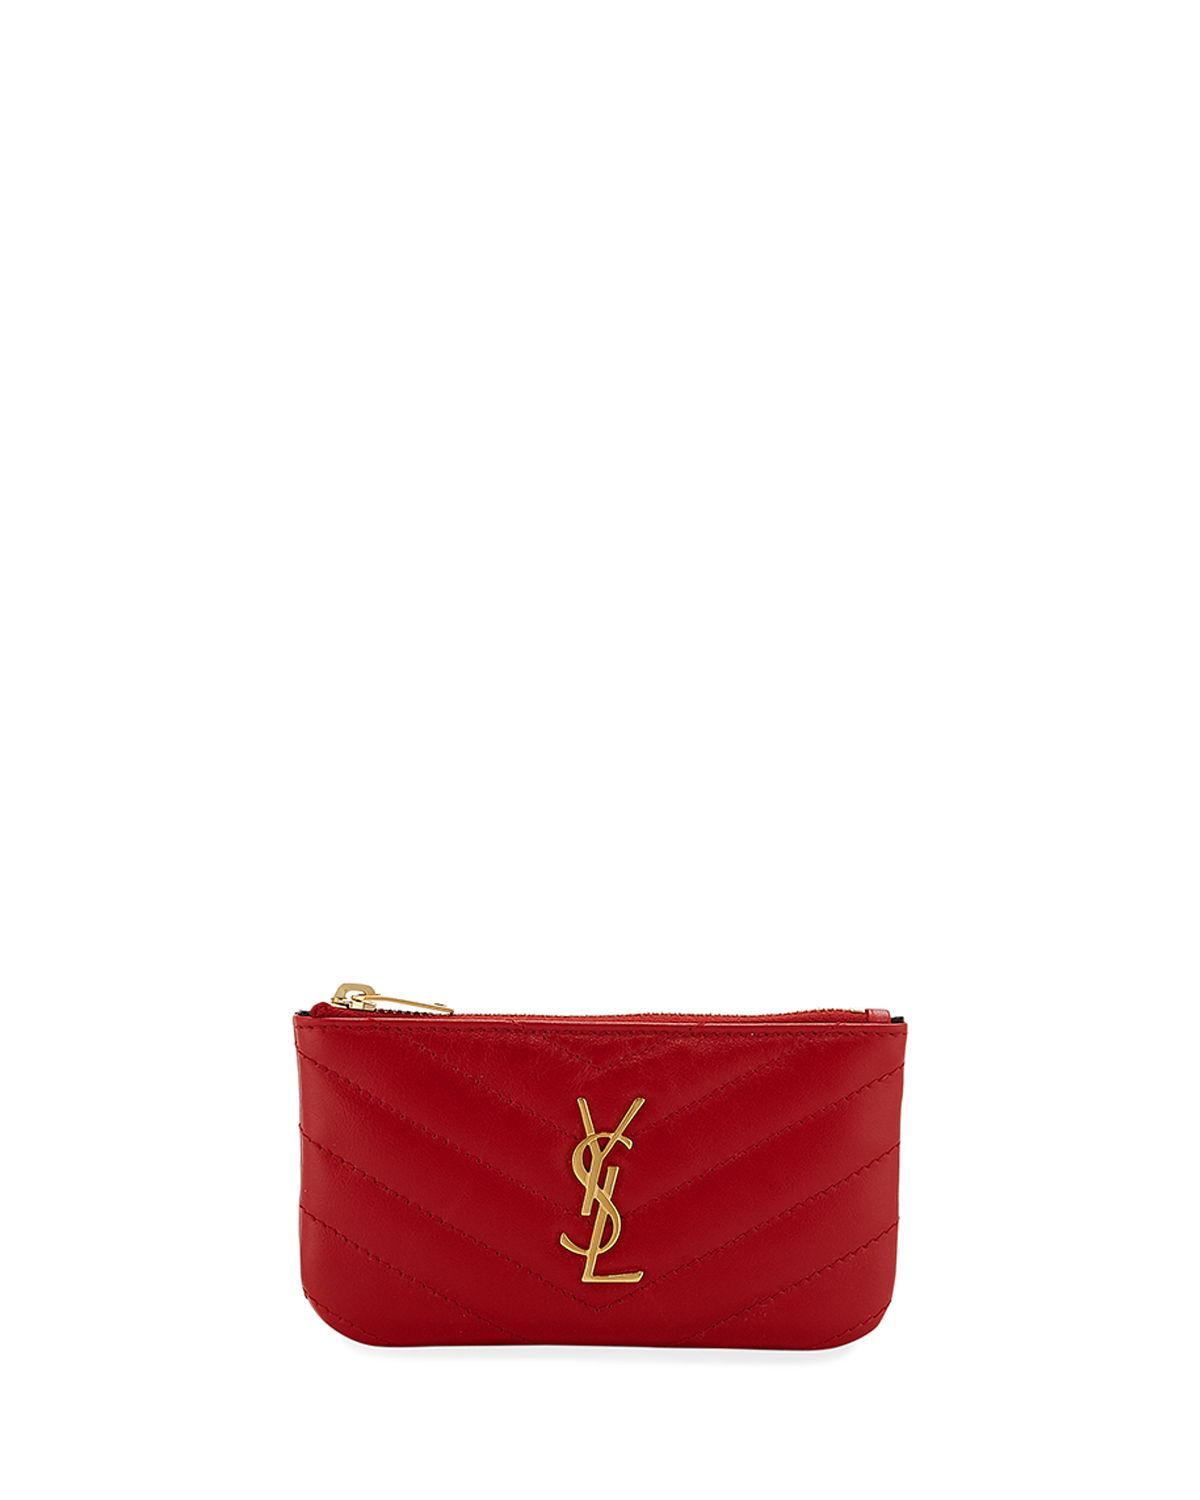 4f67952789dd Saint Laurent Loulou Monogram Ysl Mini Quilted Leather Zip Pouch With Key  Ring - Golden Hardware